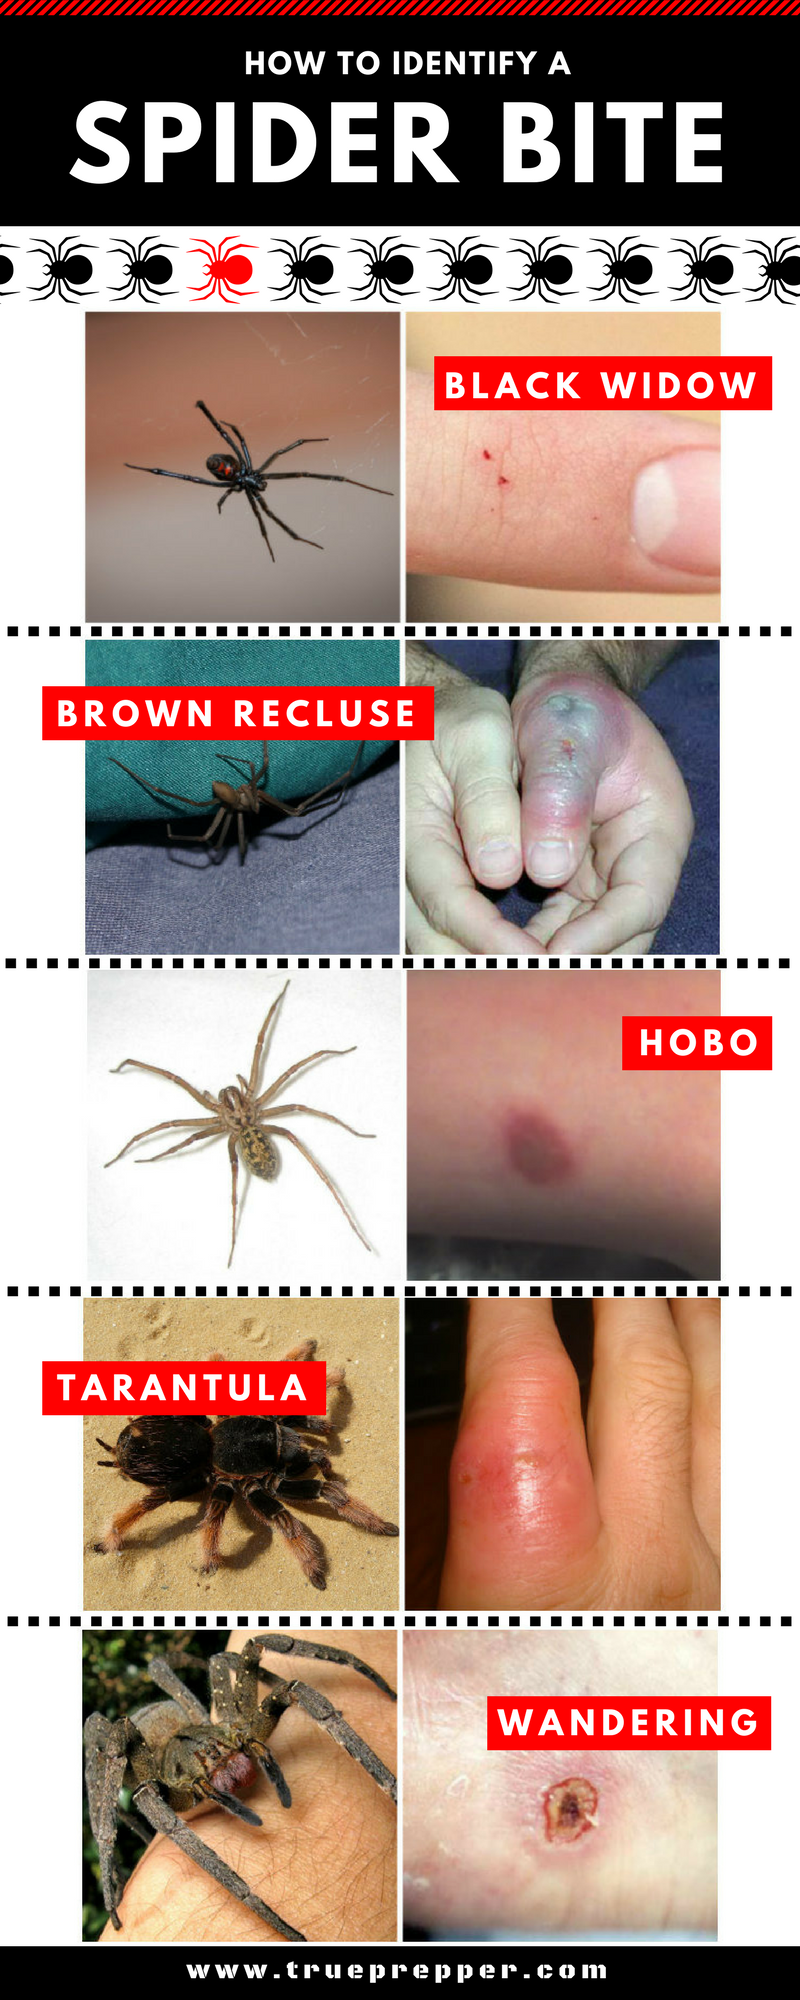 How to Identify a Spider Bite and Treat It Spider bites